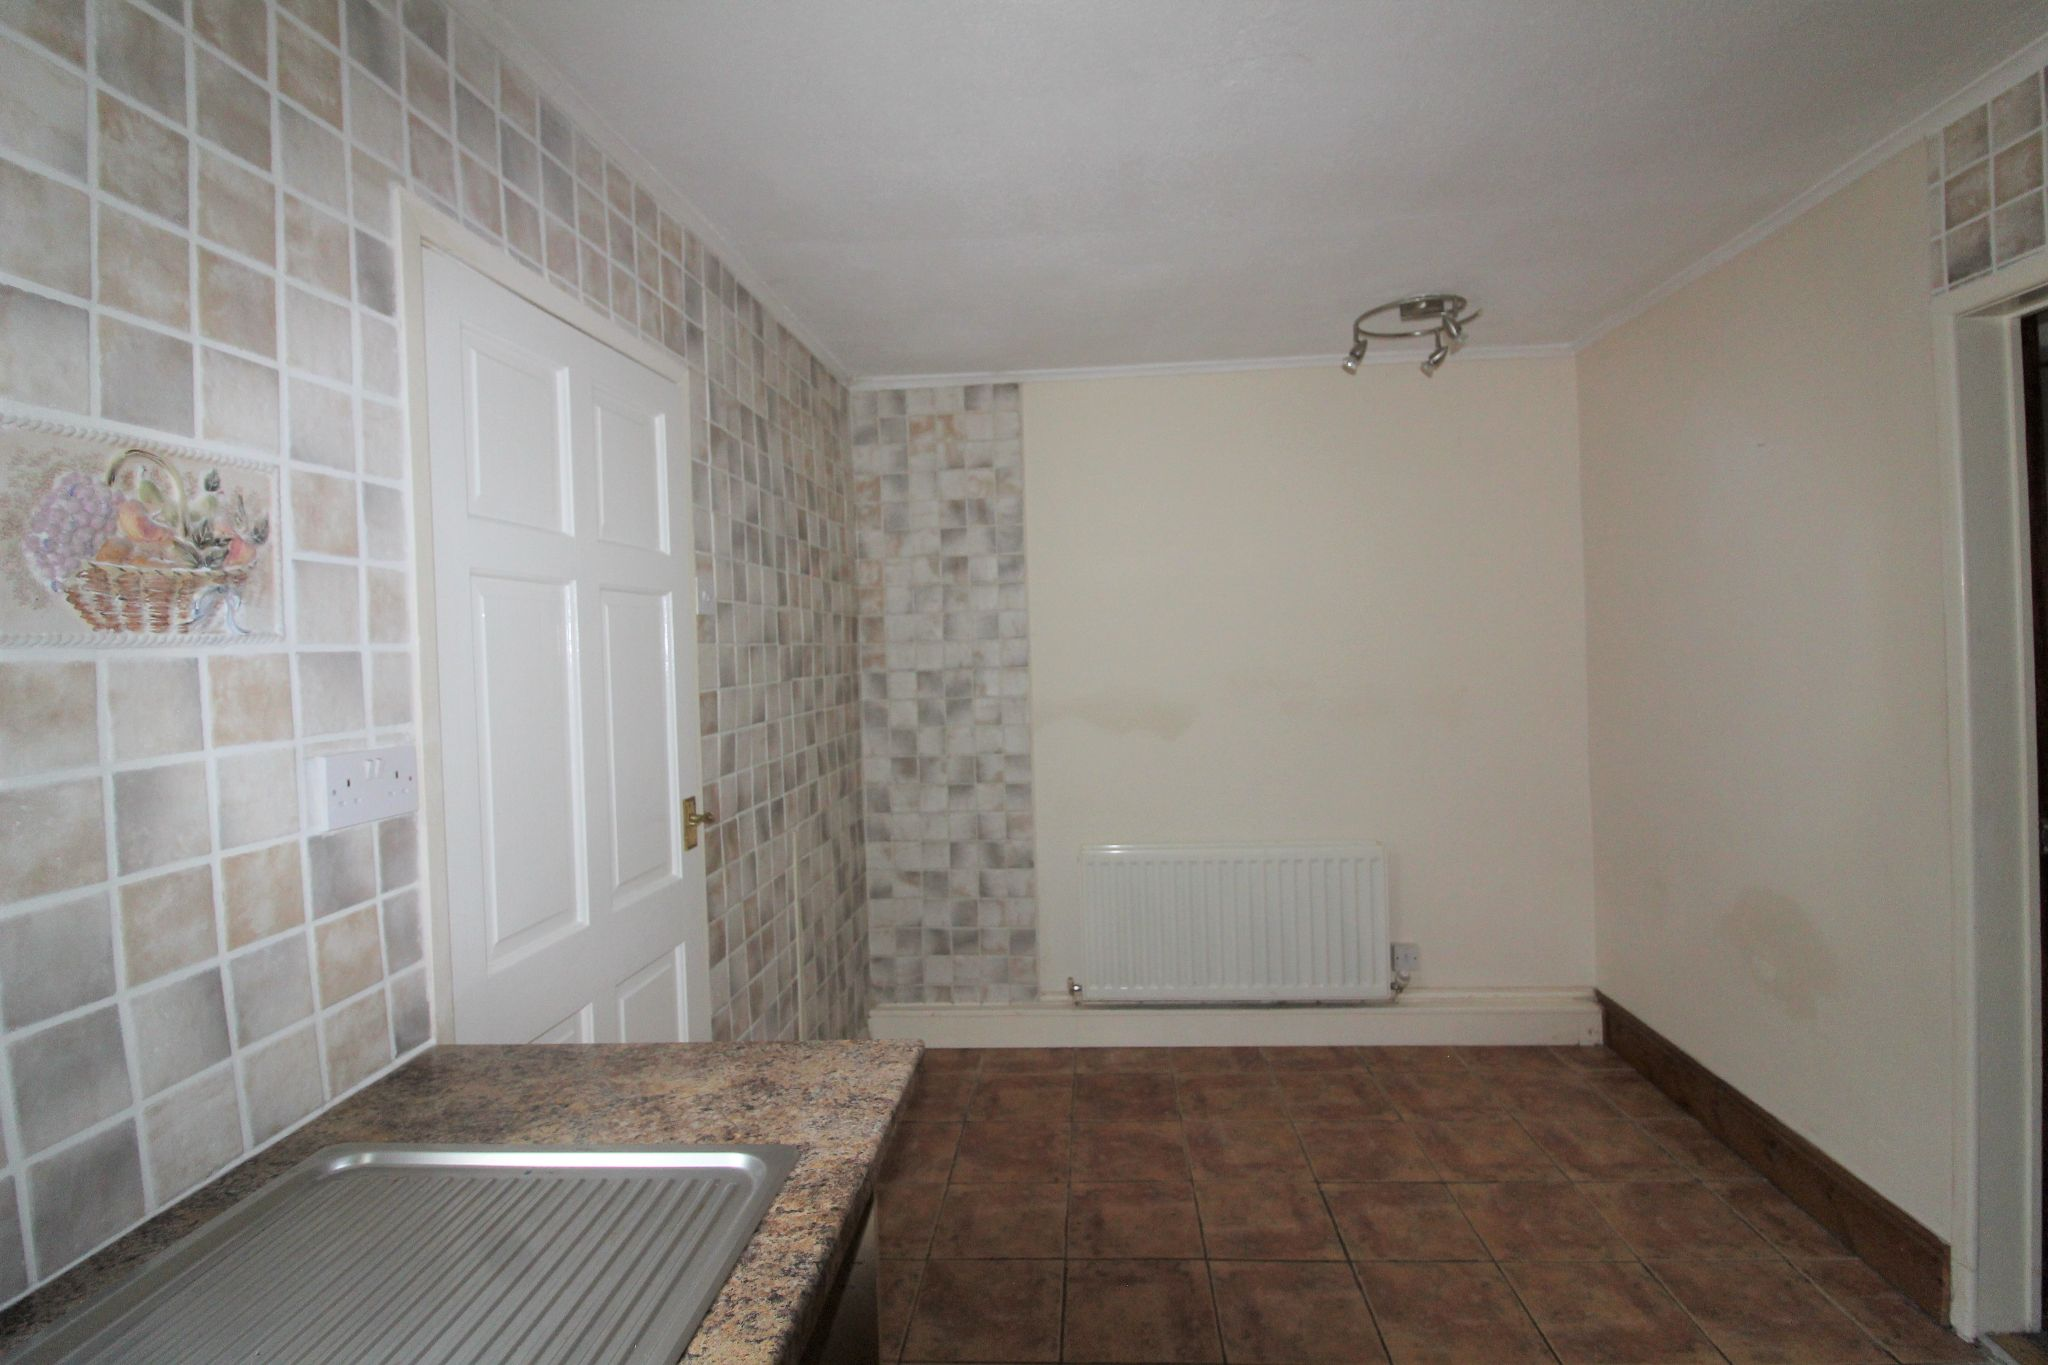 3 bedroom end terraced house For Sale in Willington And Hunwick - Photograph 41.